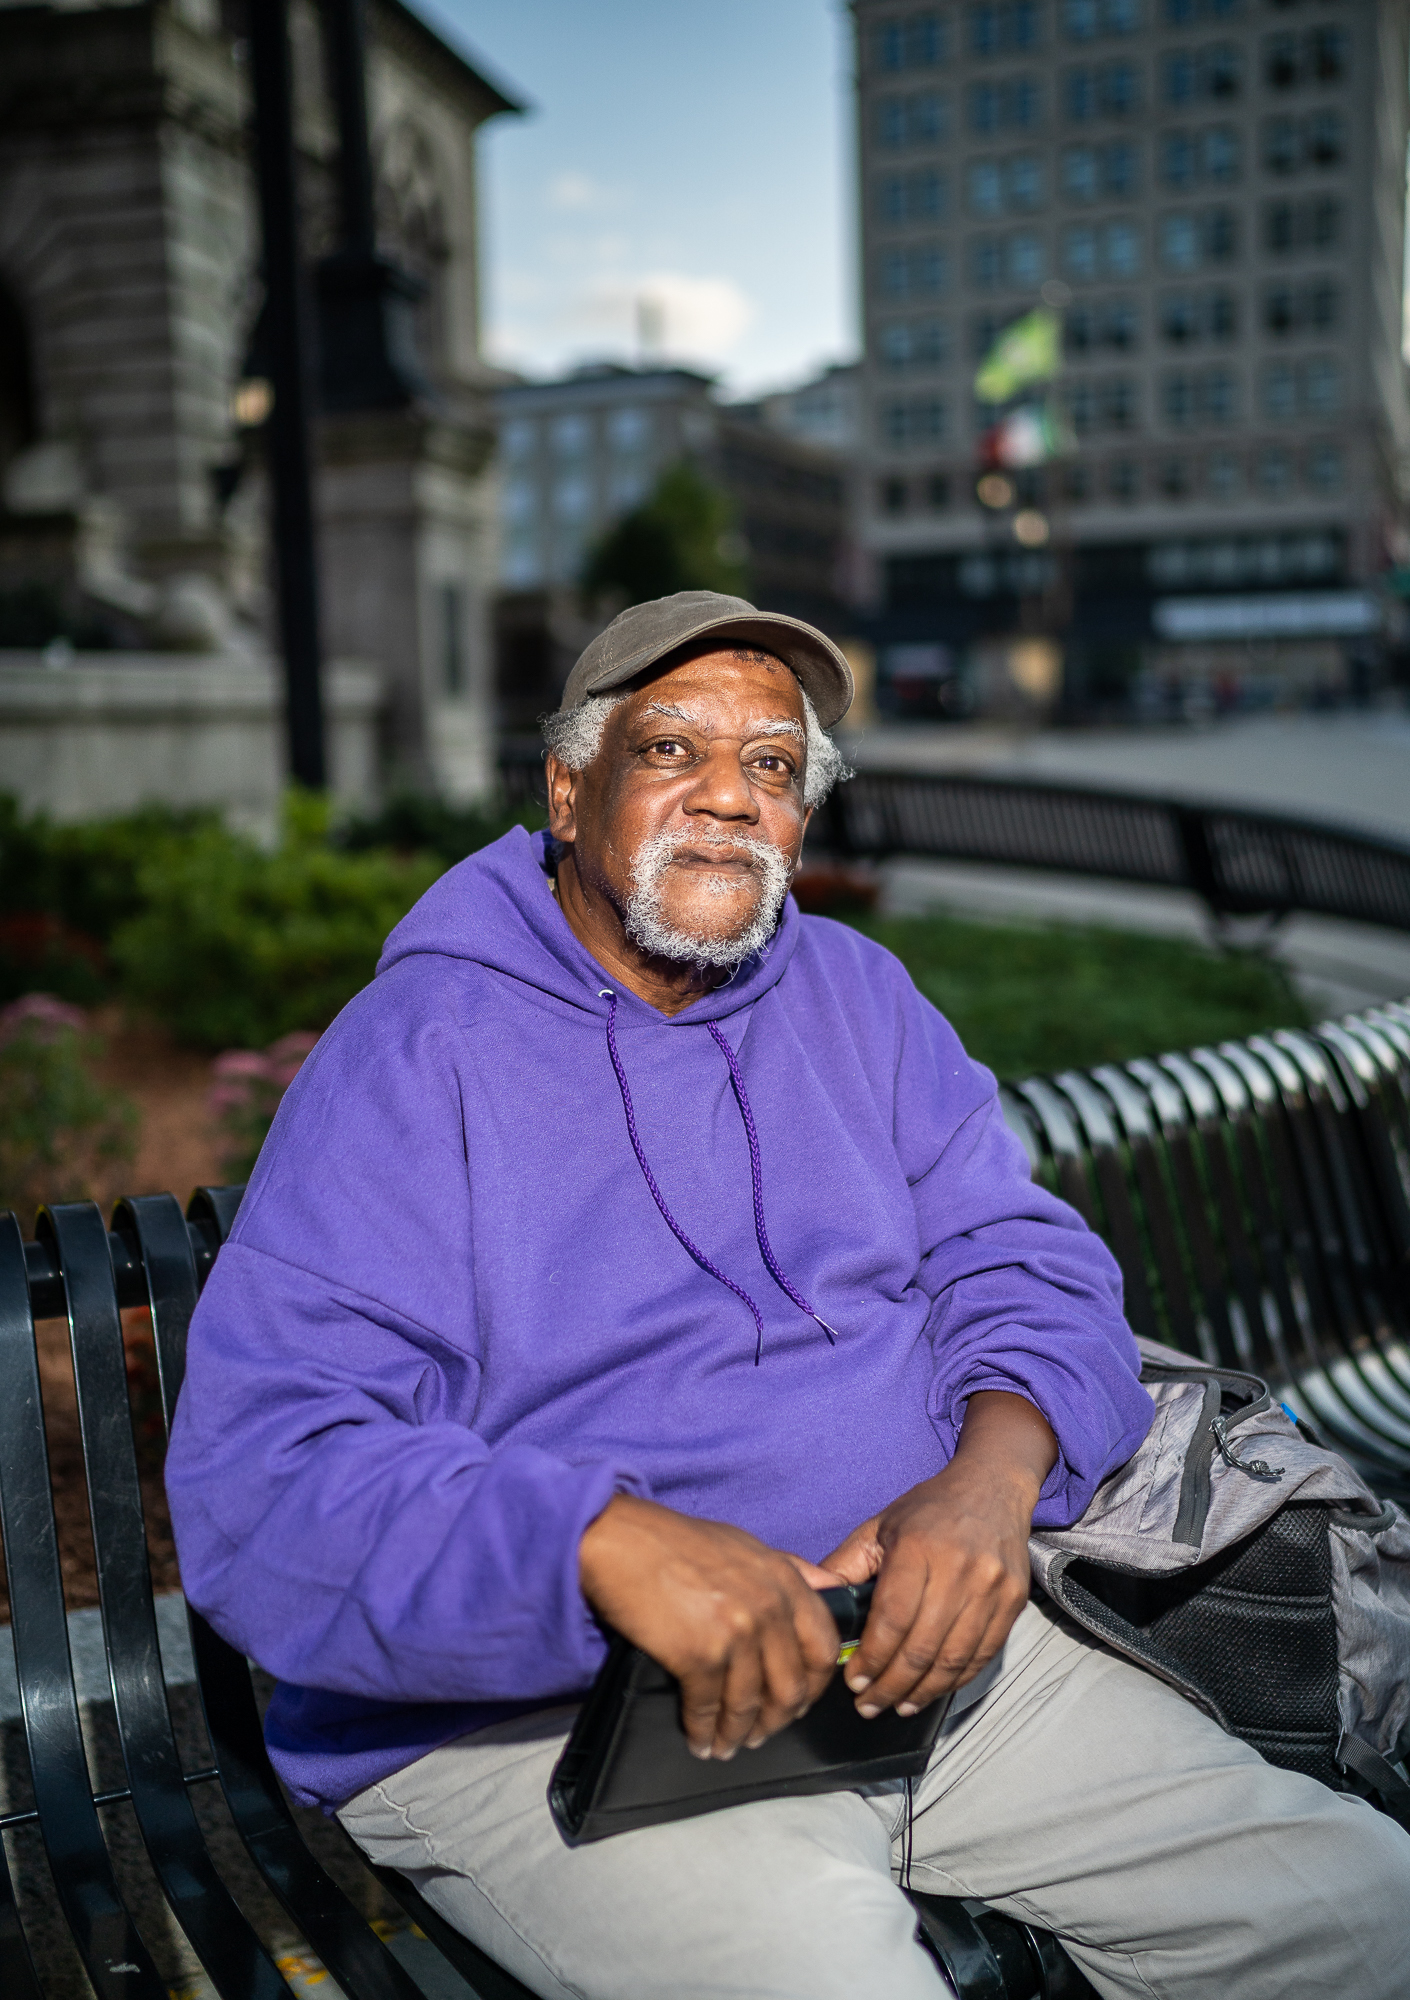 Keith, Outside City Hall, Main Street, October, 2018.